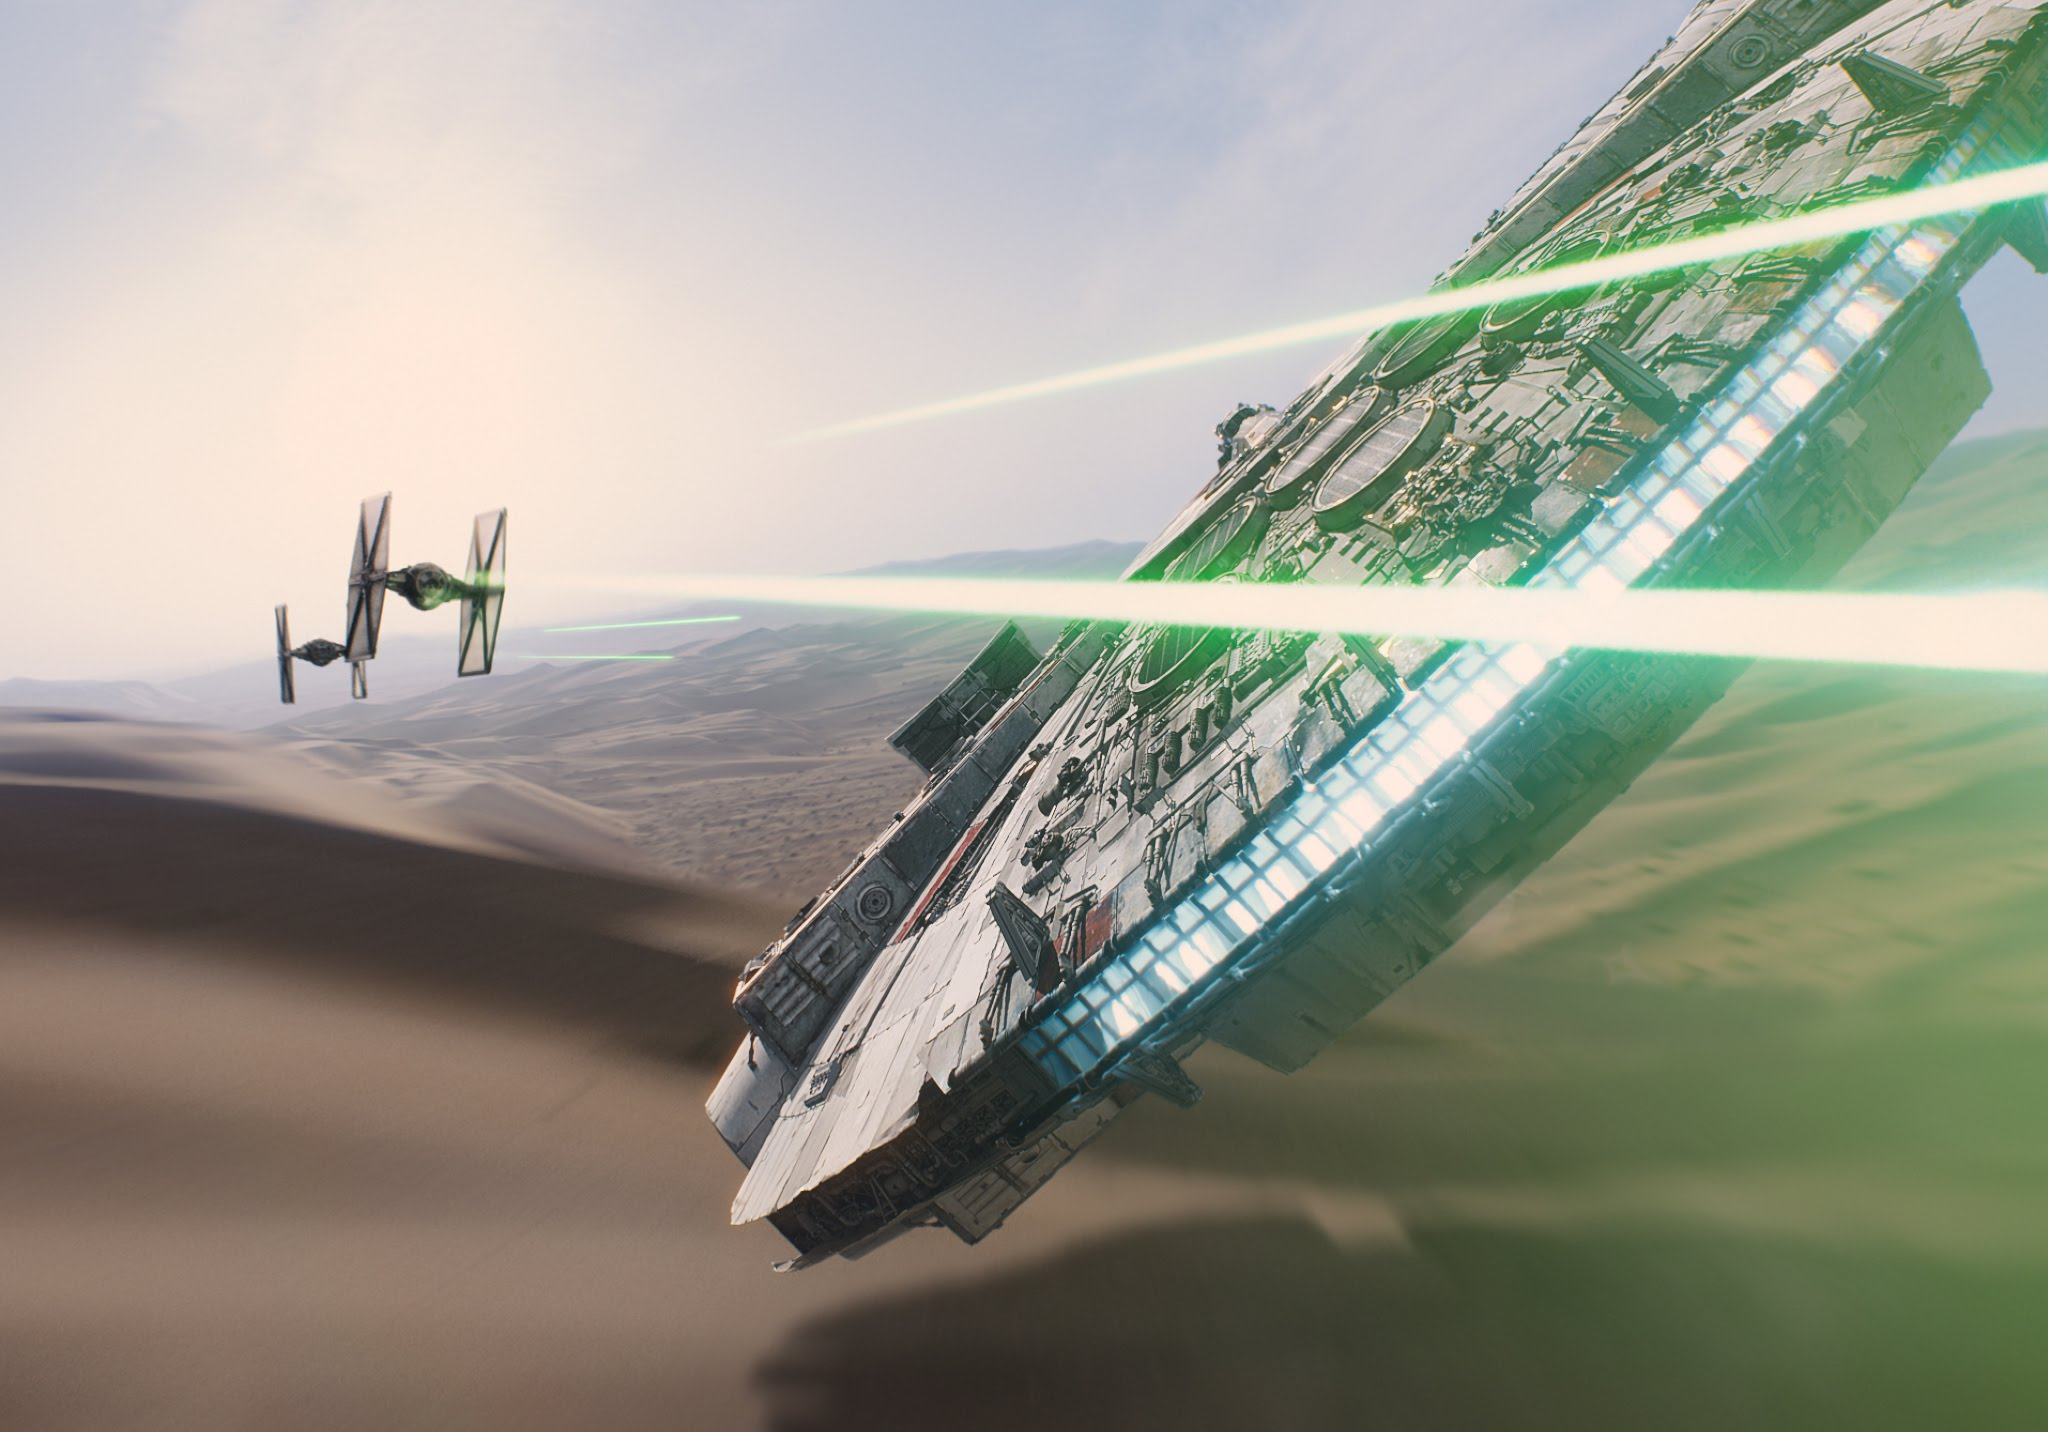 Everything We Know About Star Wars VII: The Force Awakens